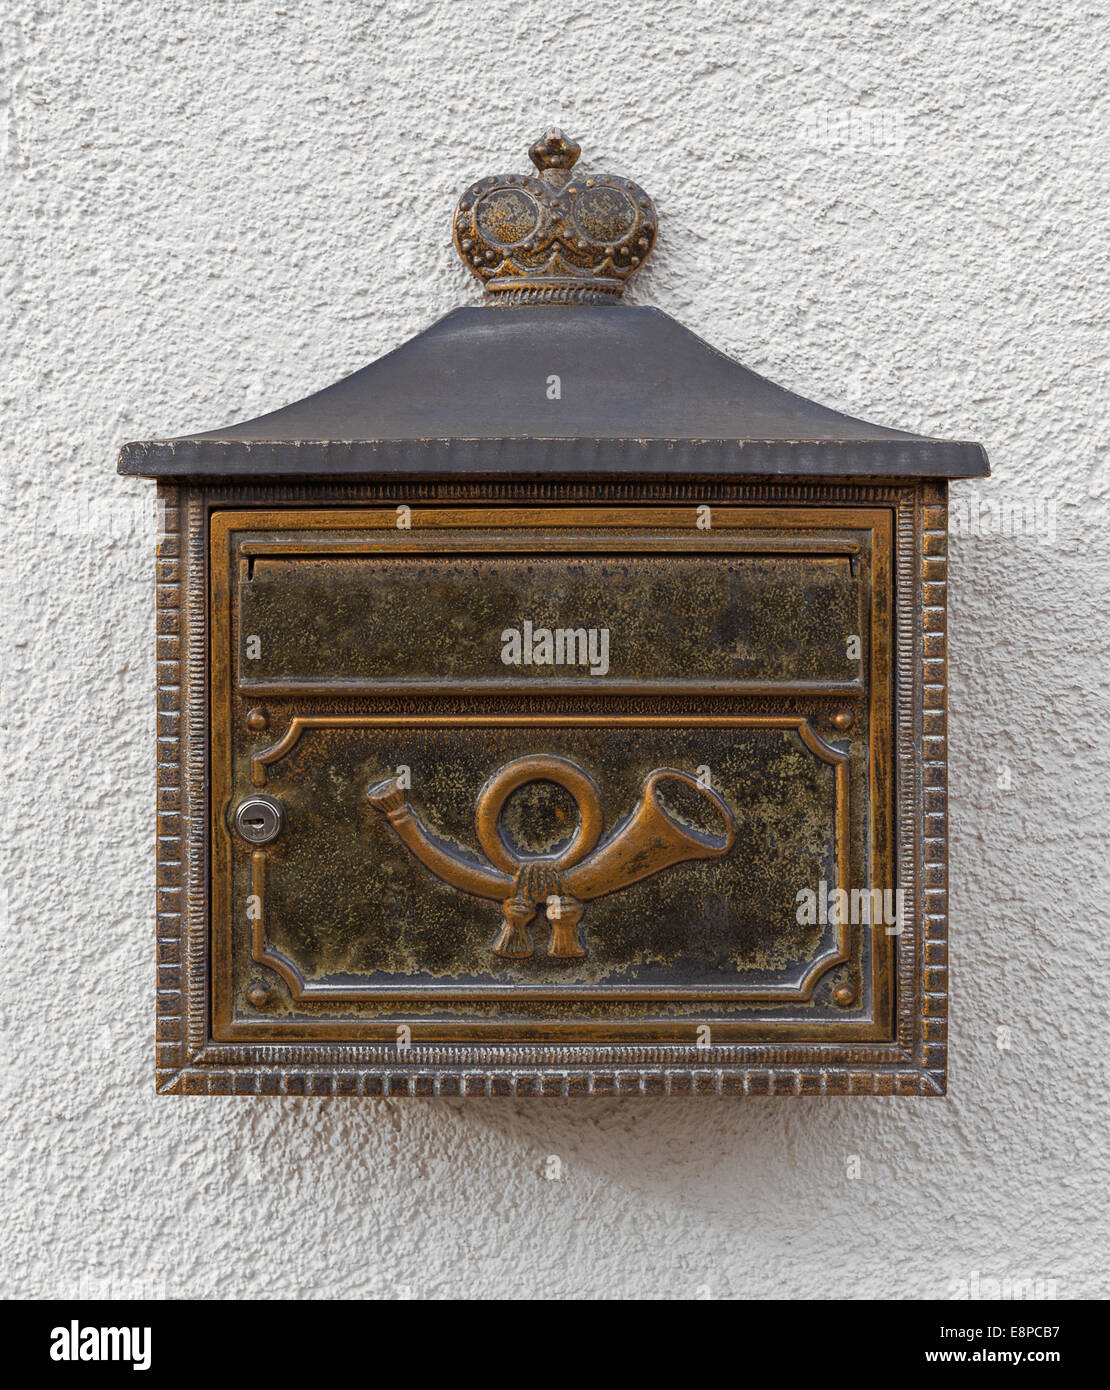 Mailbox with posthorn - Stock Image